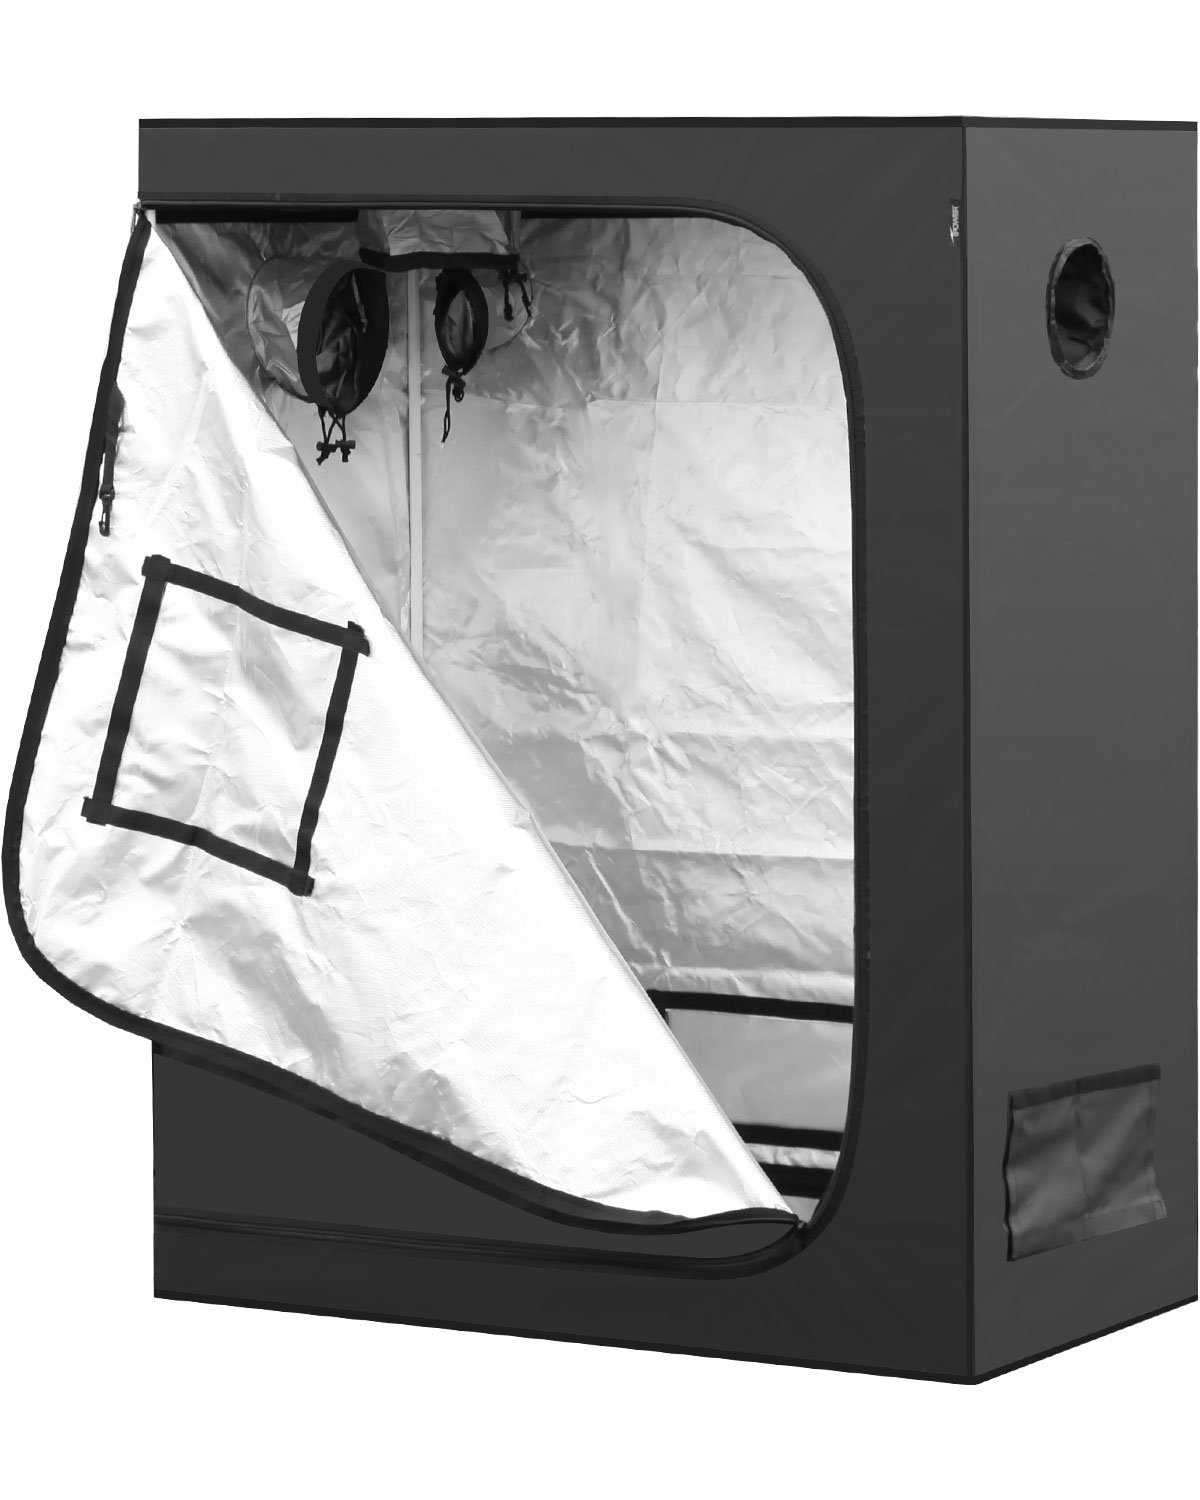 """iPower 48""""x24""""x60"""" Mylar Hydroponic Water-Resistant Grow Tent with Observation Window and Removable Floor Tray, Tool Bag for Indoor Plant Seedling, Propagation, Blossom, etc 2'x4'"""